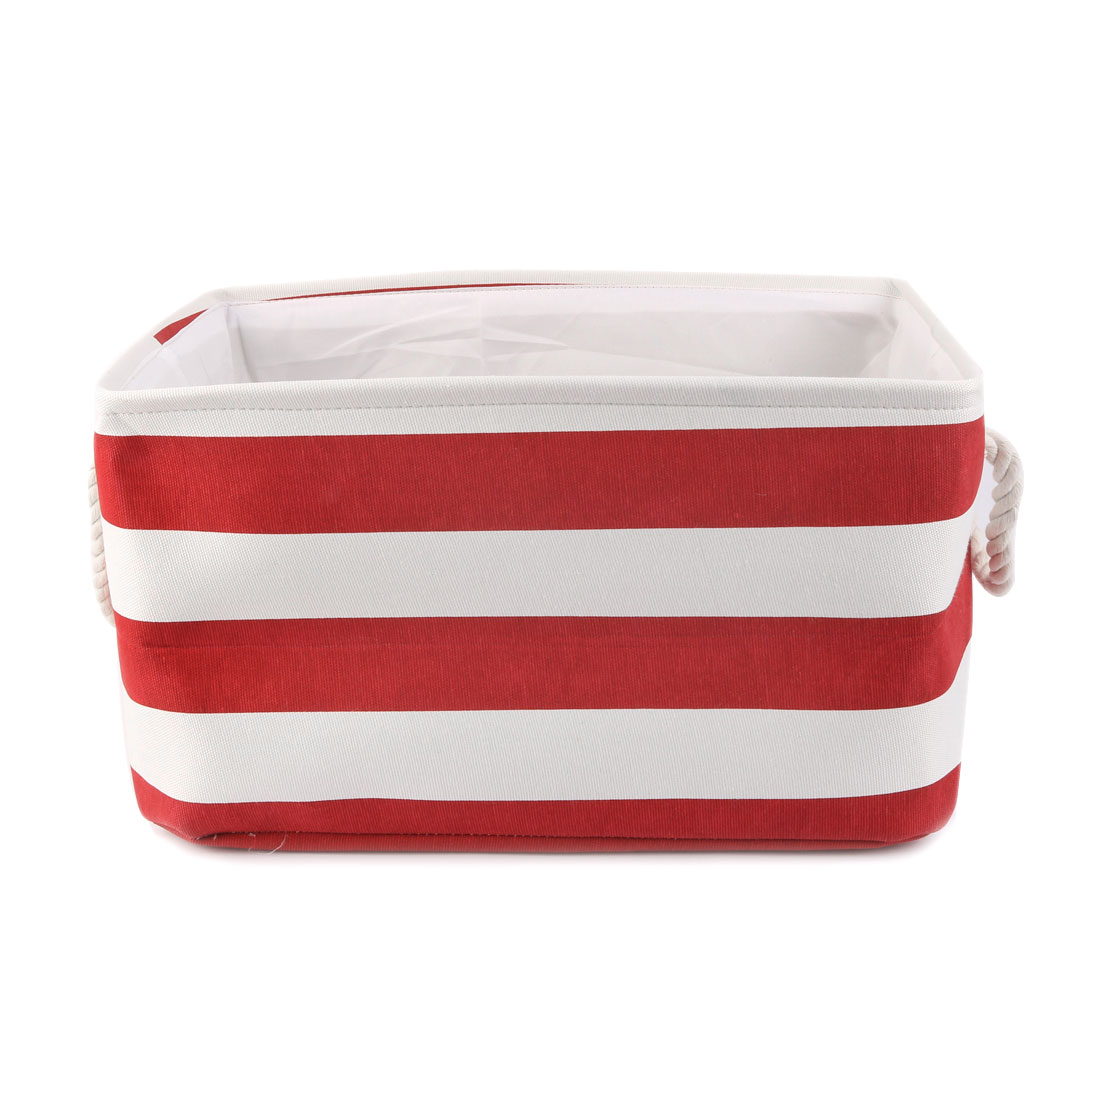 Household Fabric Storage Bin Basket Closet Toy Box Container Organizer Red